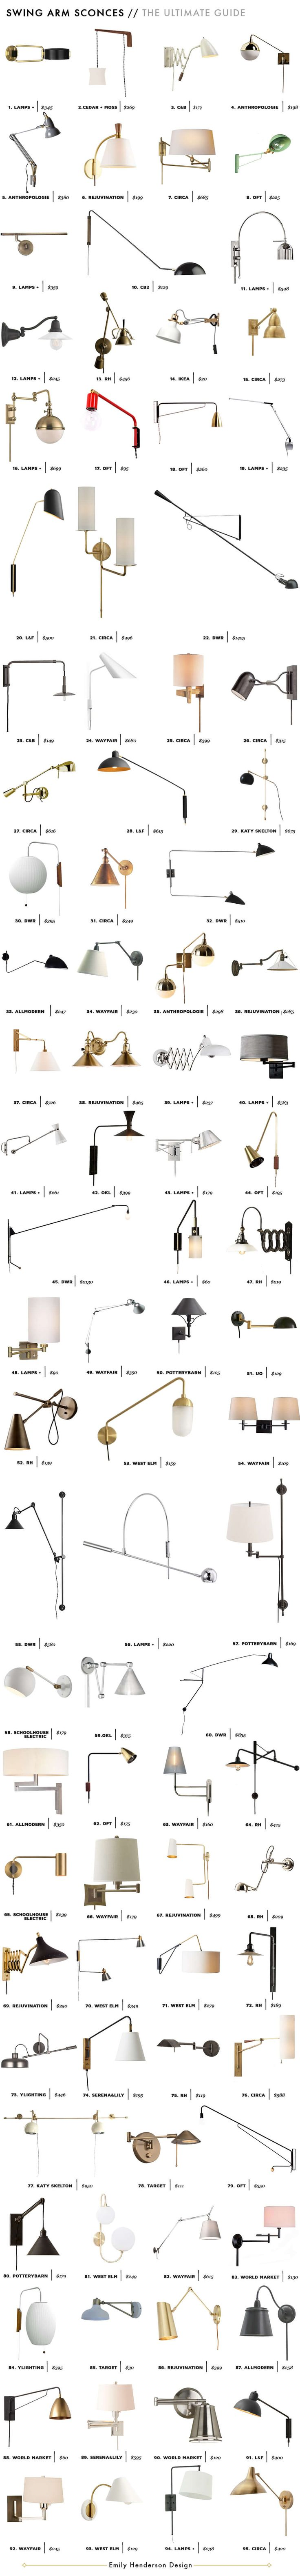 Best floor reading lamps for seniors - The Ultimate Swing Arm Sconce Roundup